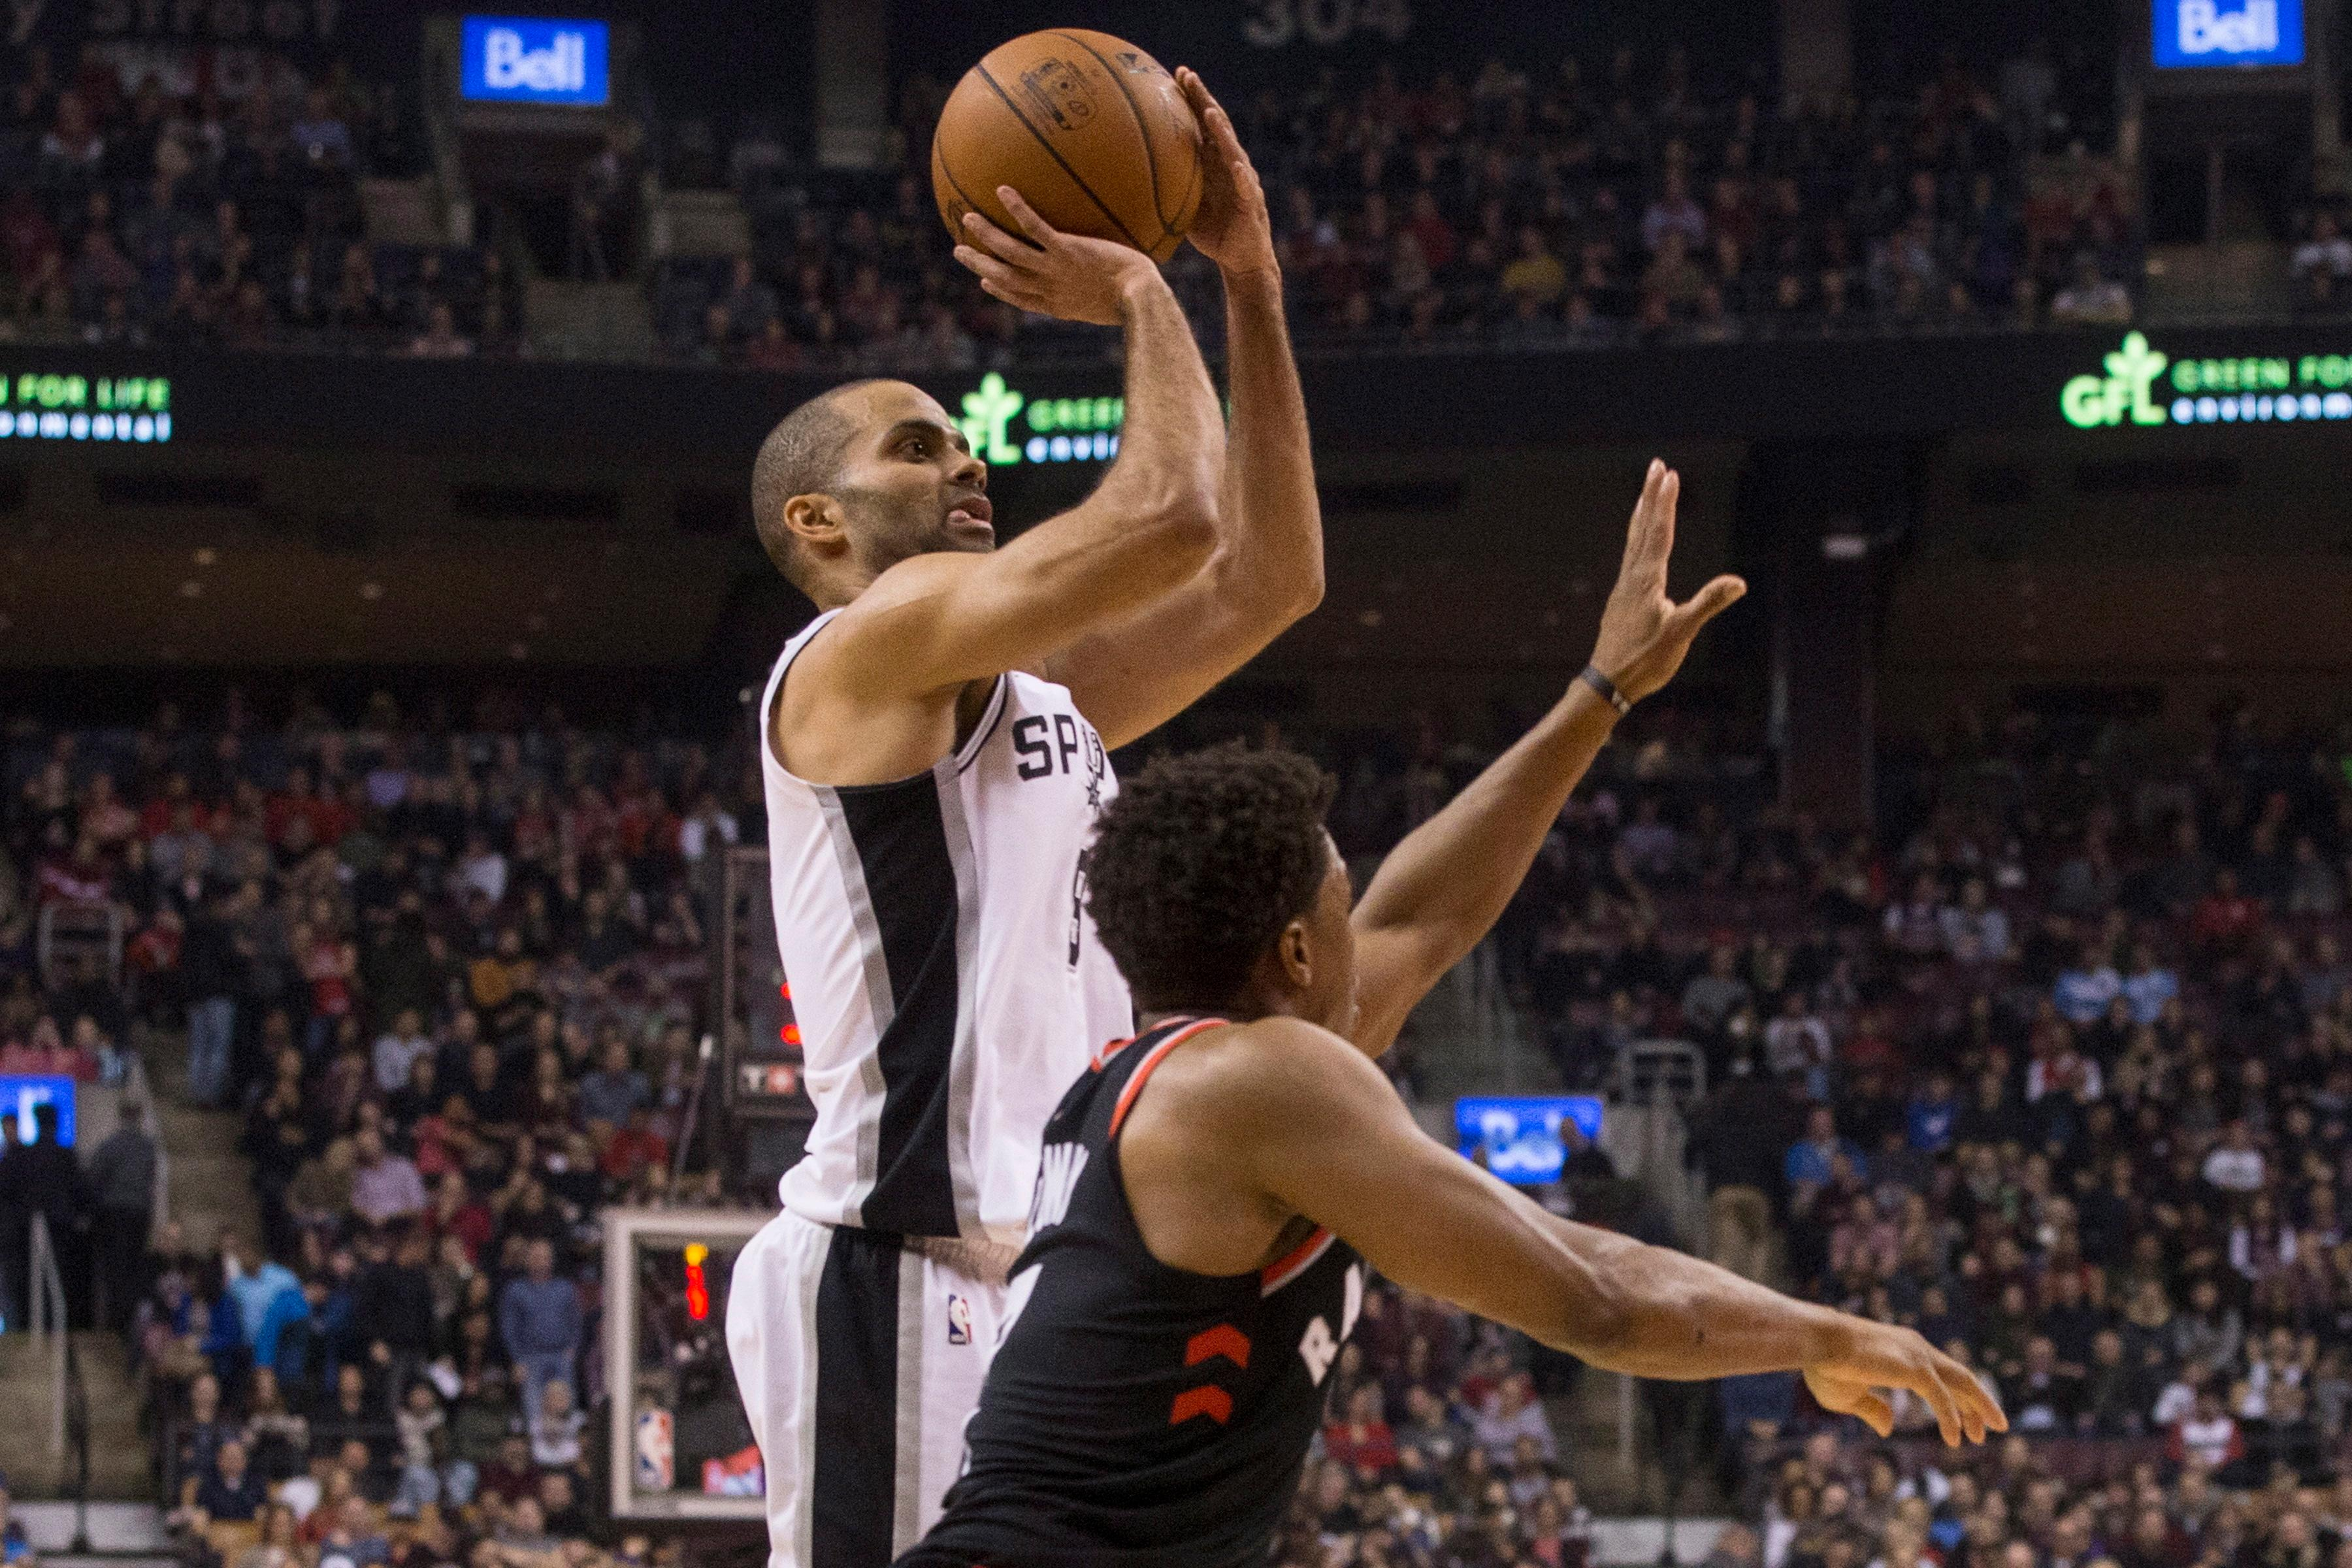 San Antonio Spurs guard Tony Parker (9) shoots over Toronto Raptors guard Kyle Lowry (7) during the first half of an NBA basketball game Friday, Jan. 19, 2018, in Toronto. (Chris Young/The Canadian Press via AP)